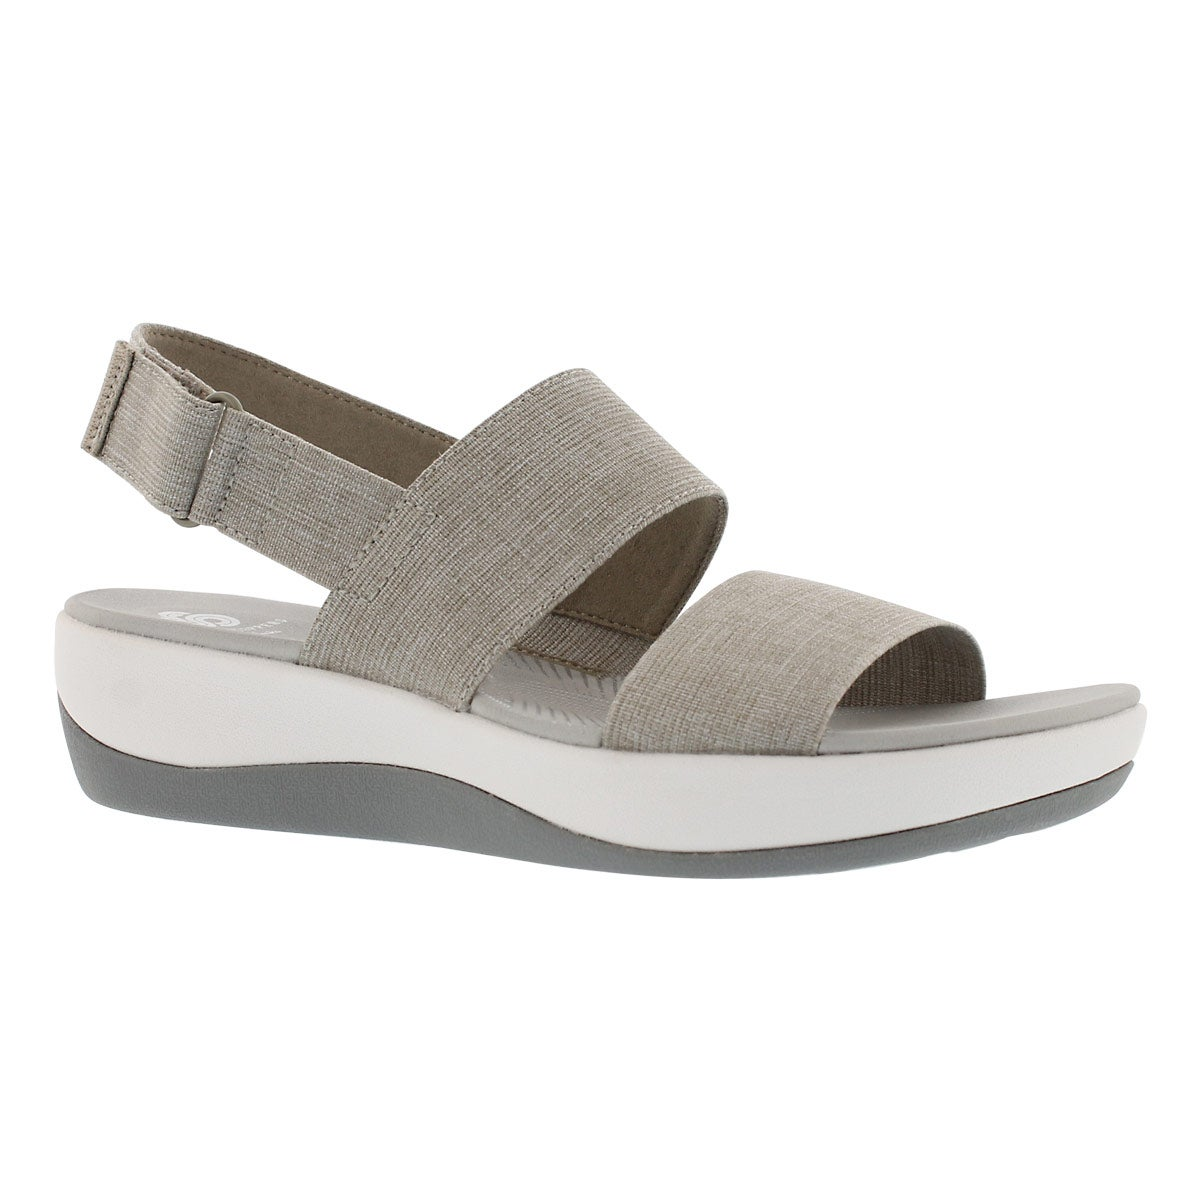 Women's ARLA JACORY desert wedge sandals